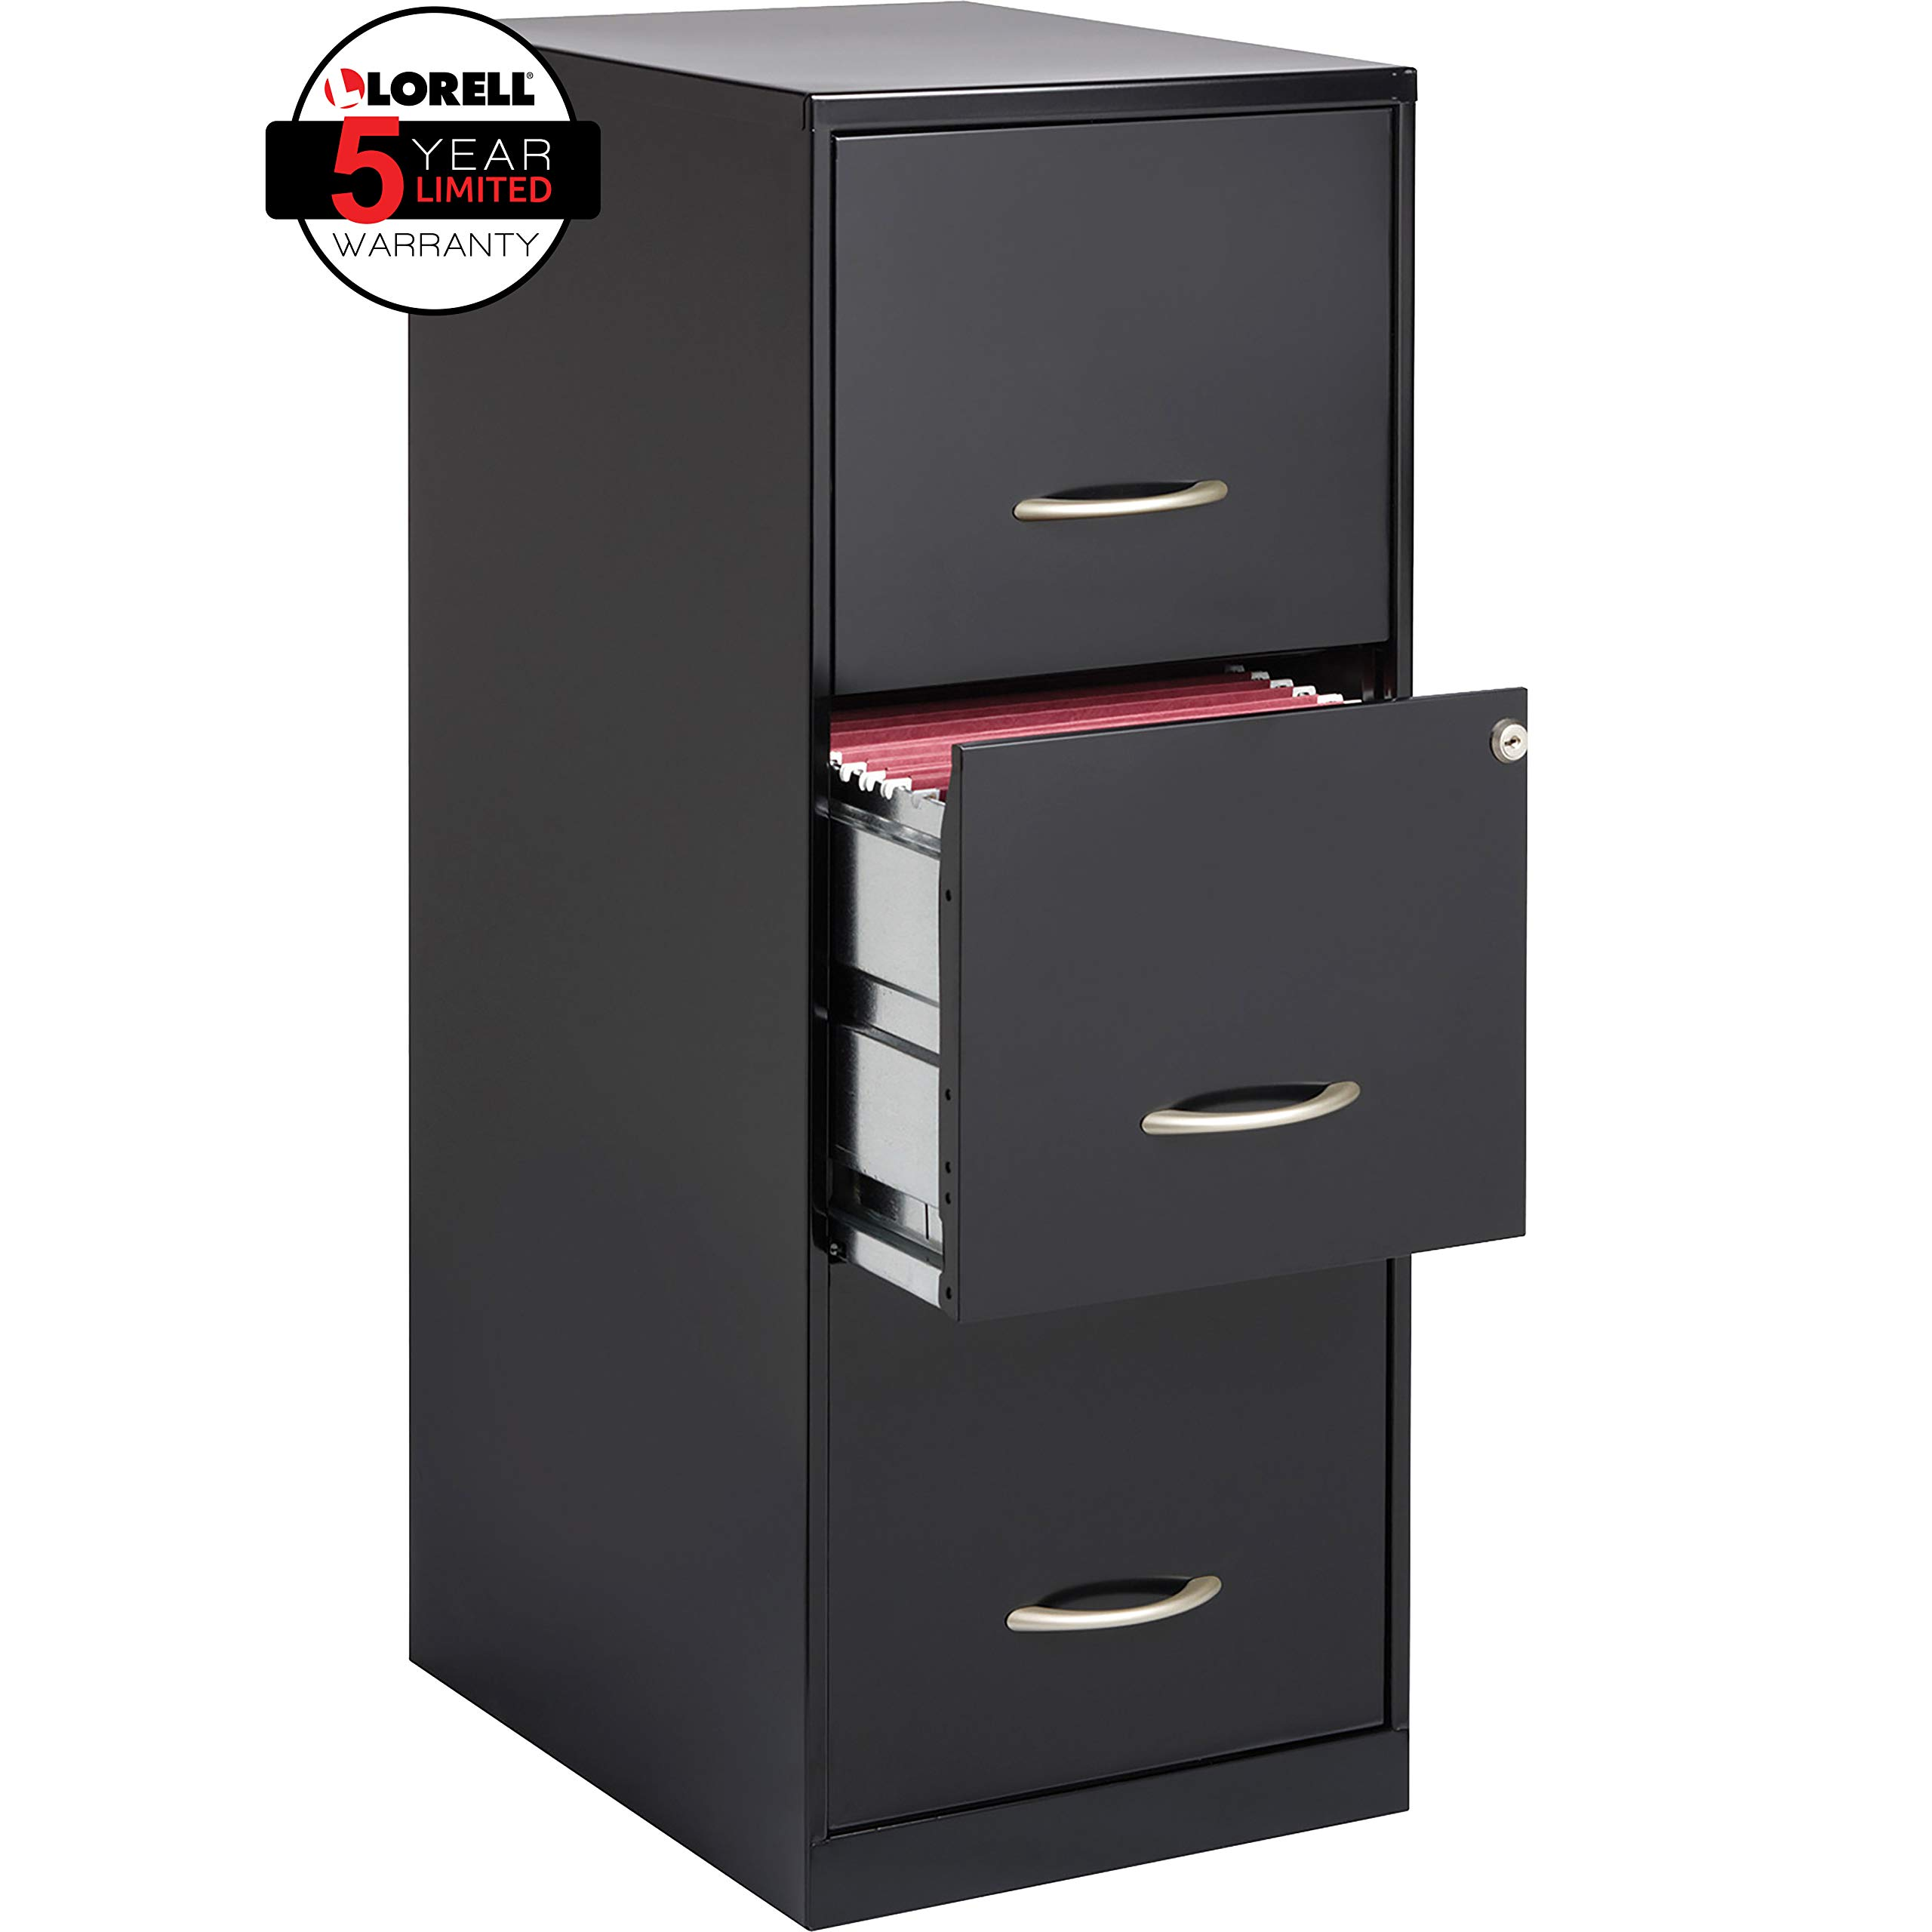 Lorell SOHO 18''D 3-Drawer Letter-Size Vertical File Cabinet, Black by Lorell